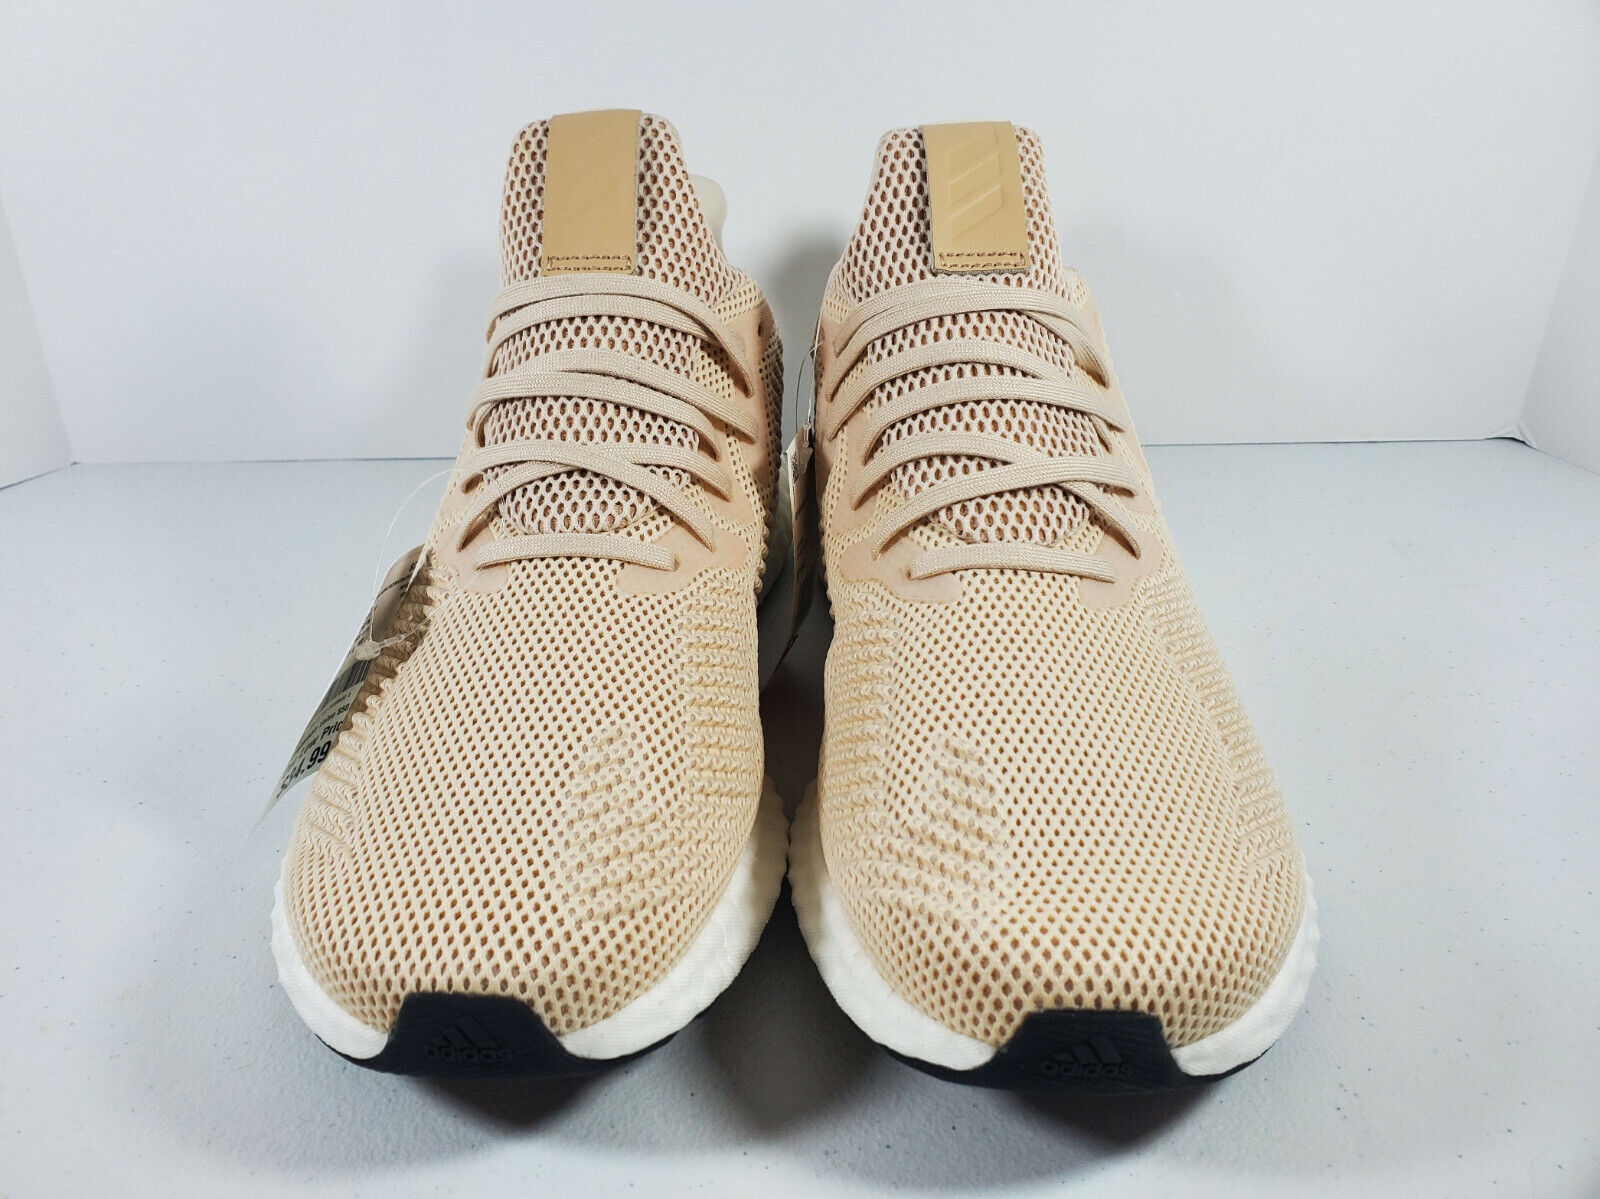 Adidas Alphaboost Black Friday Shoes Men's- Linen / Pale Nud